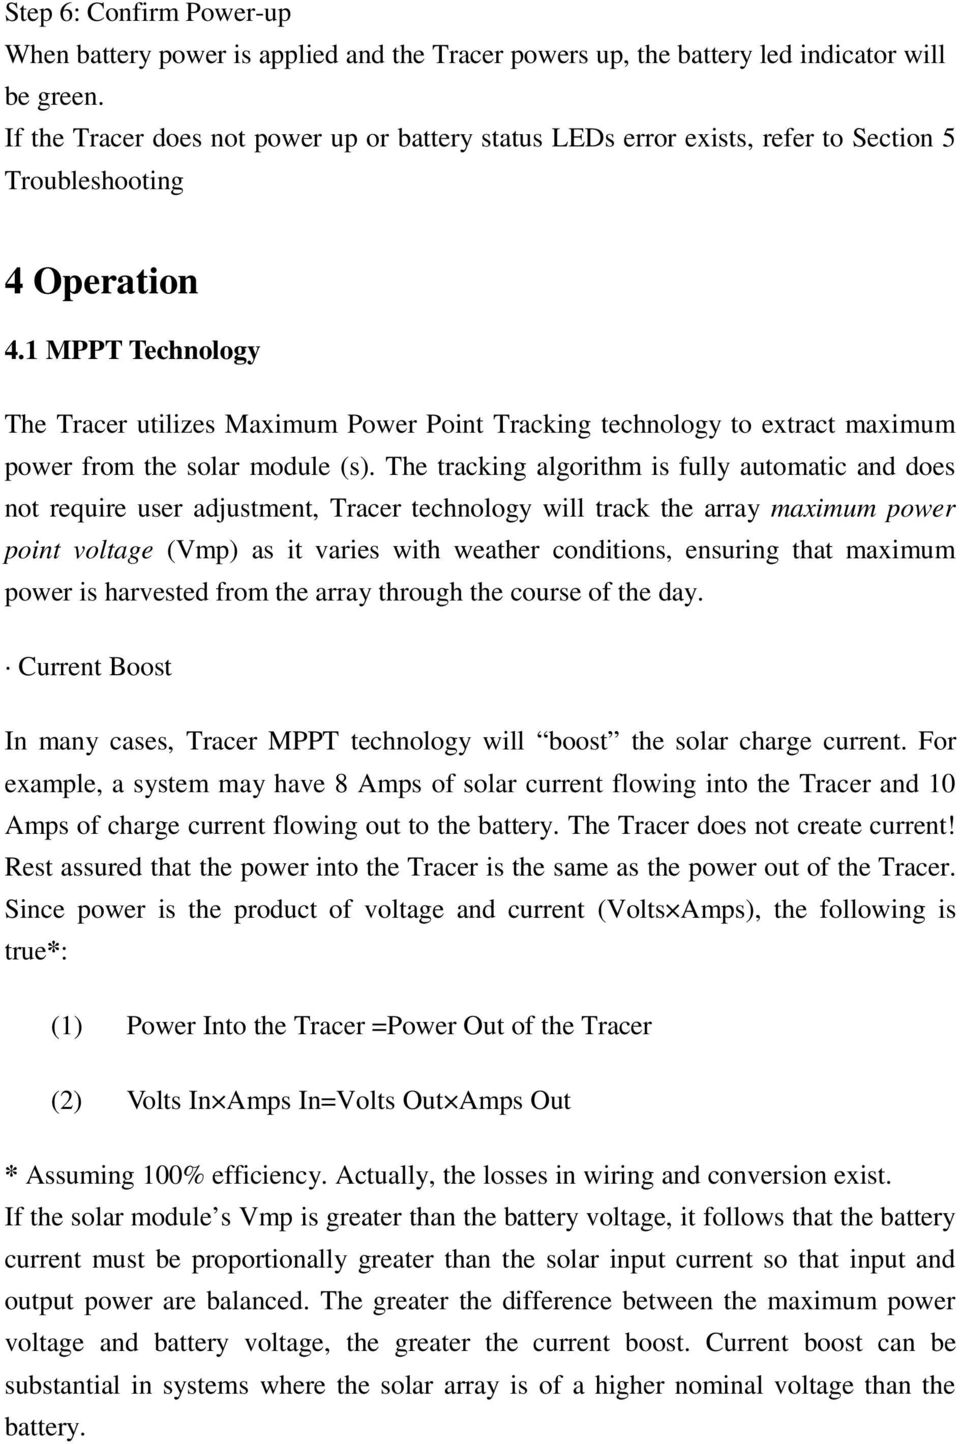 1 MPPT Technology The Tracer utilizes Maximum Power Point Tracking technology to extract maximum power from the solar module (s).